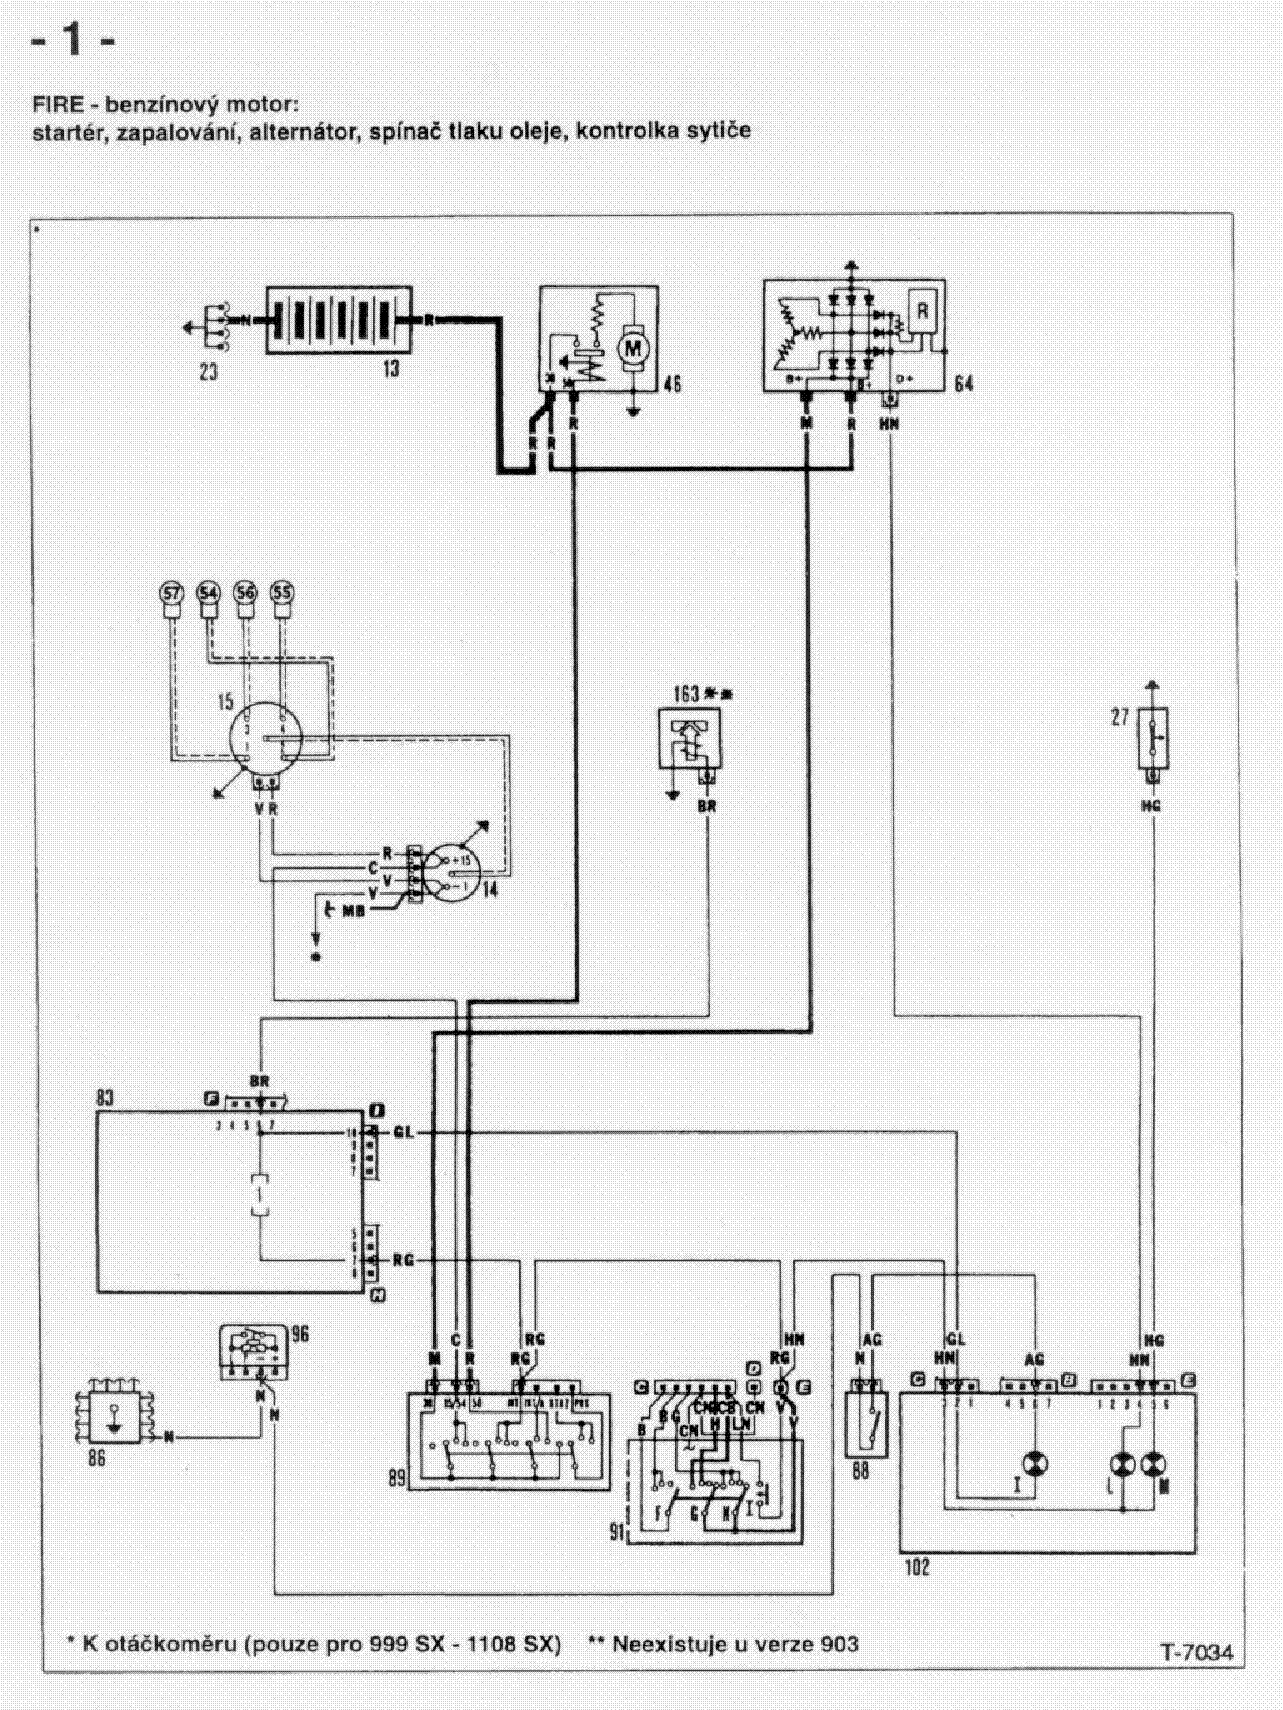 FIAT UNO WIRING DIAGRAM service manual (1st page)